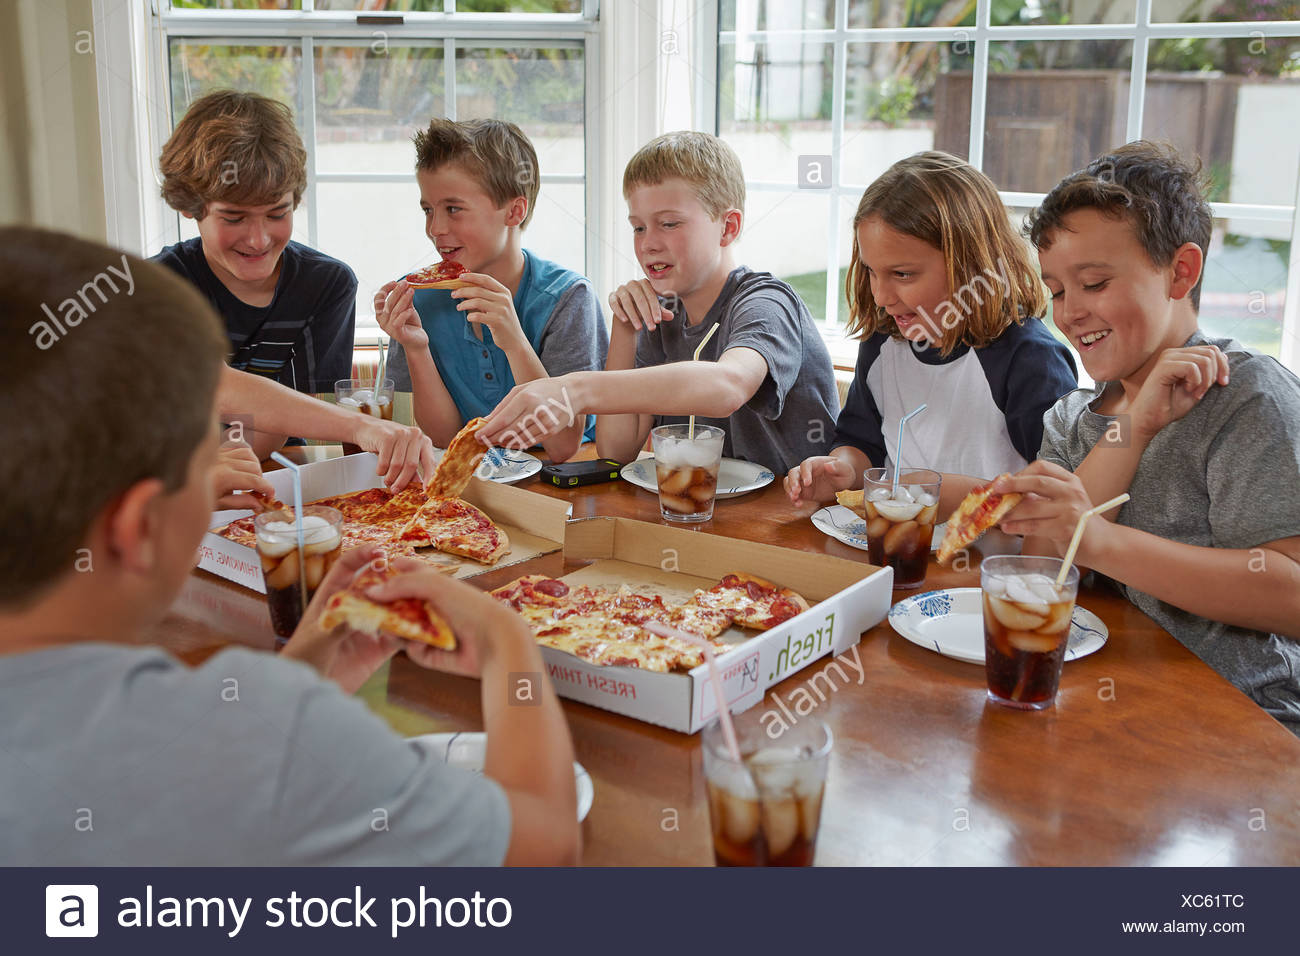 Group of boys sharing pizza - Stock Image